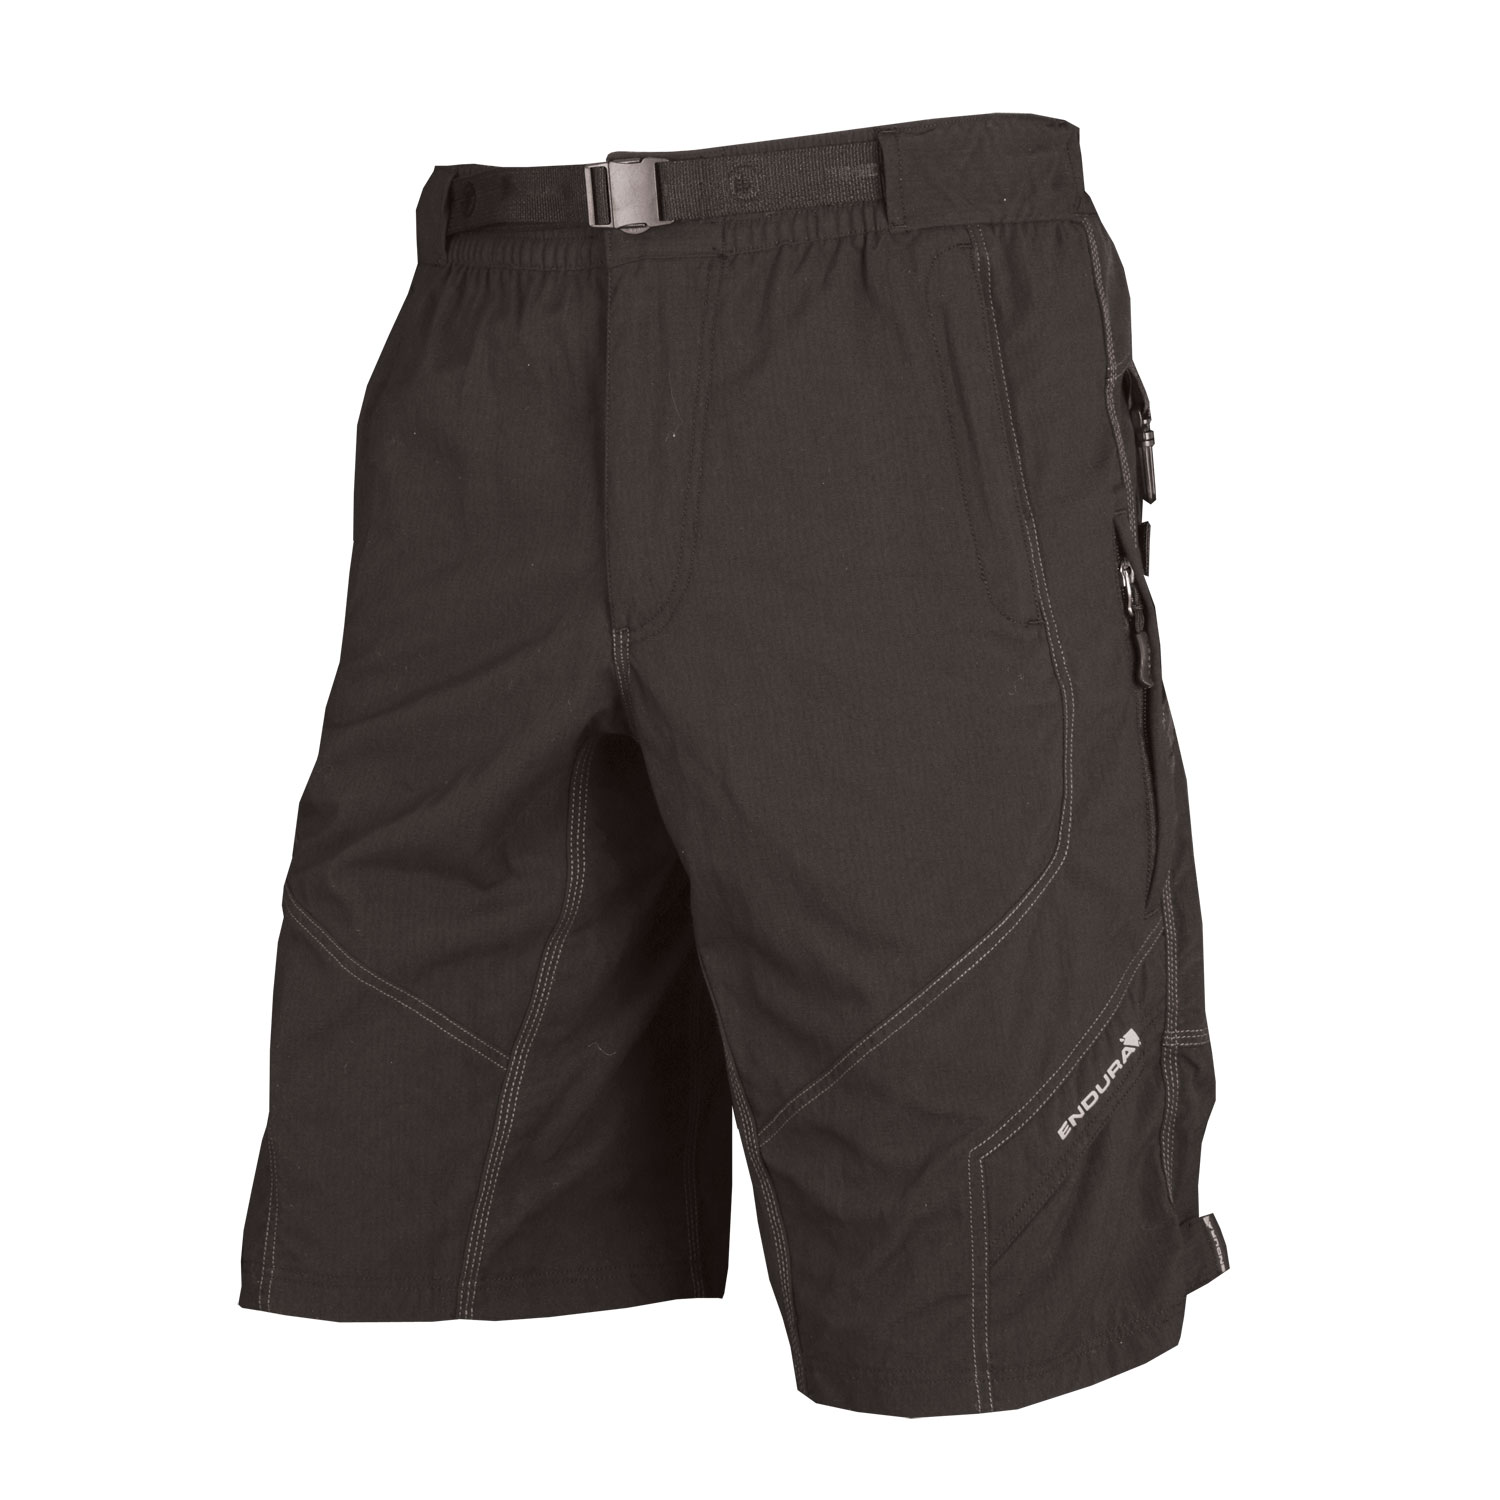 Hummvee Short Black/None